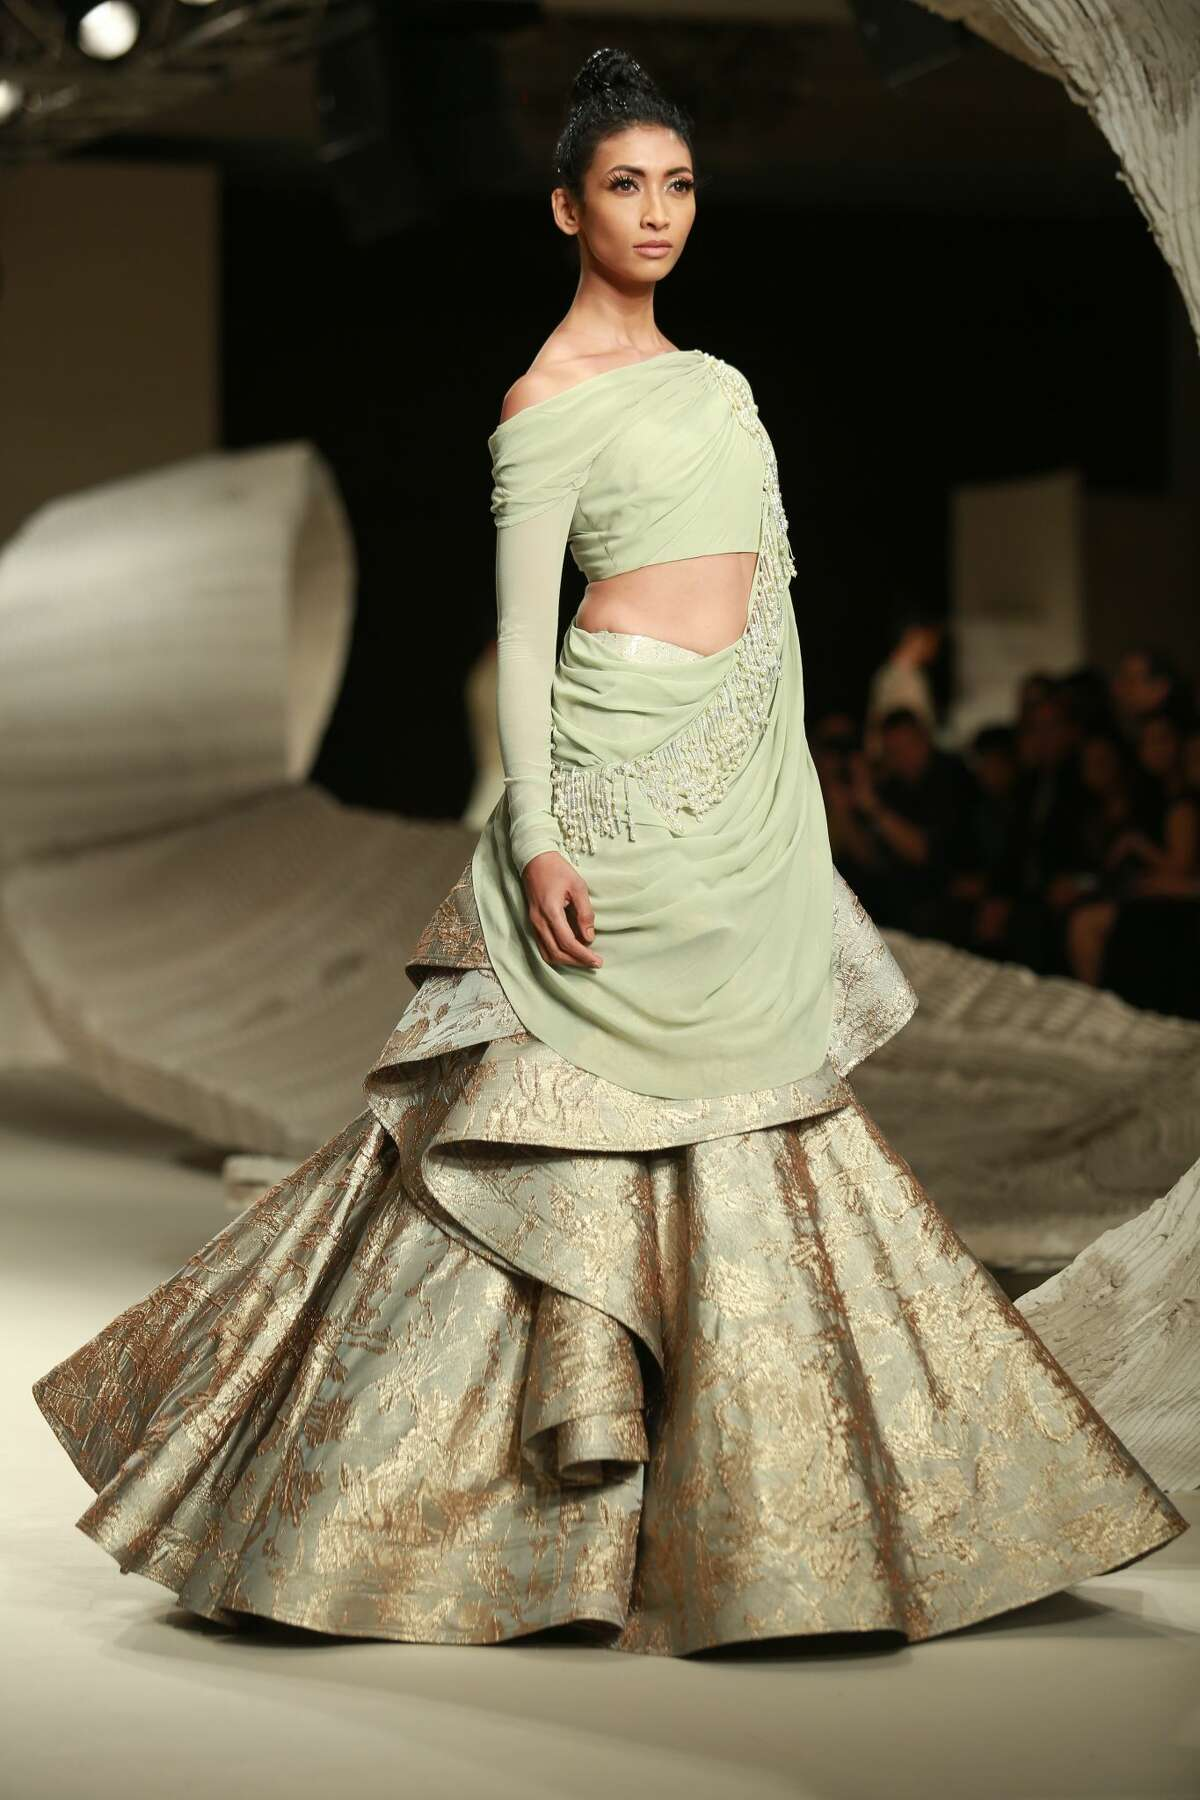 India Couture Week in New Delhi is bringing us some amazing fashions. Click through the slideshow for a few of our favorite looks. This photo: We're going to dub this the tornado skirt. The draping is glorious, with a tiny tornado coming down the side.